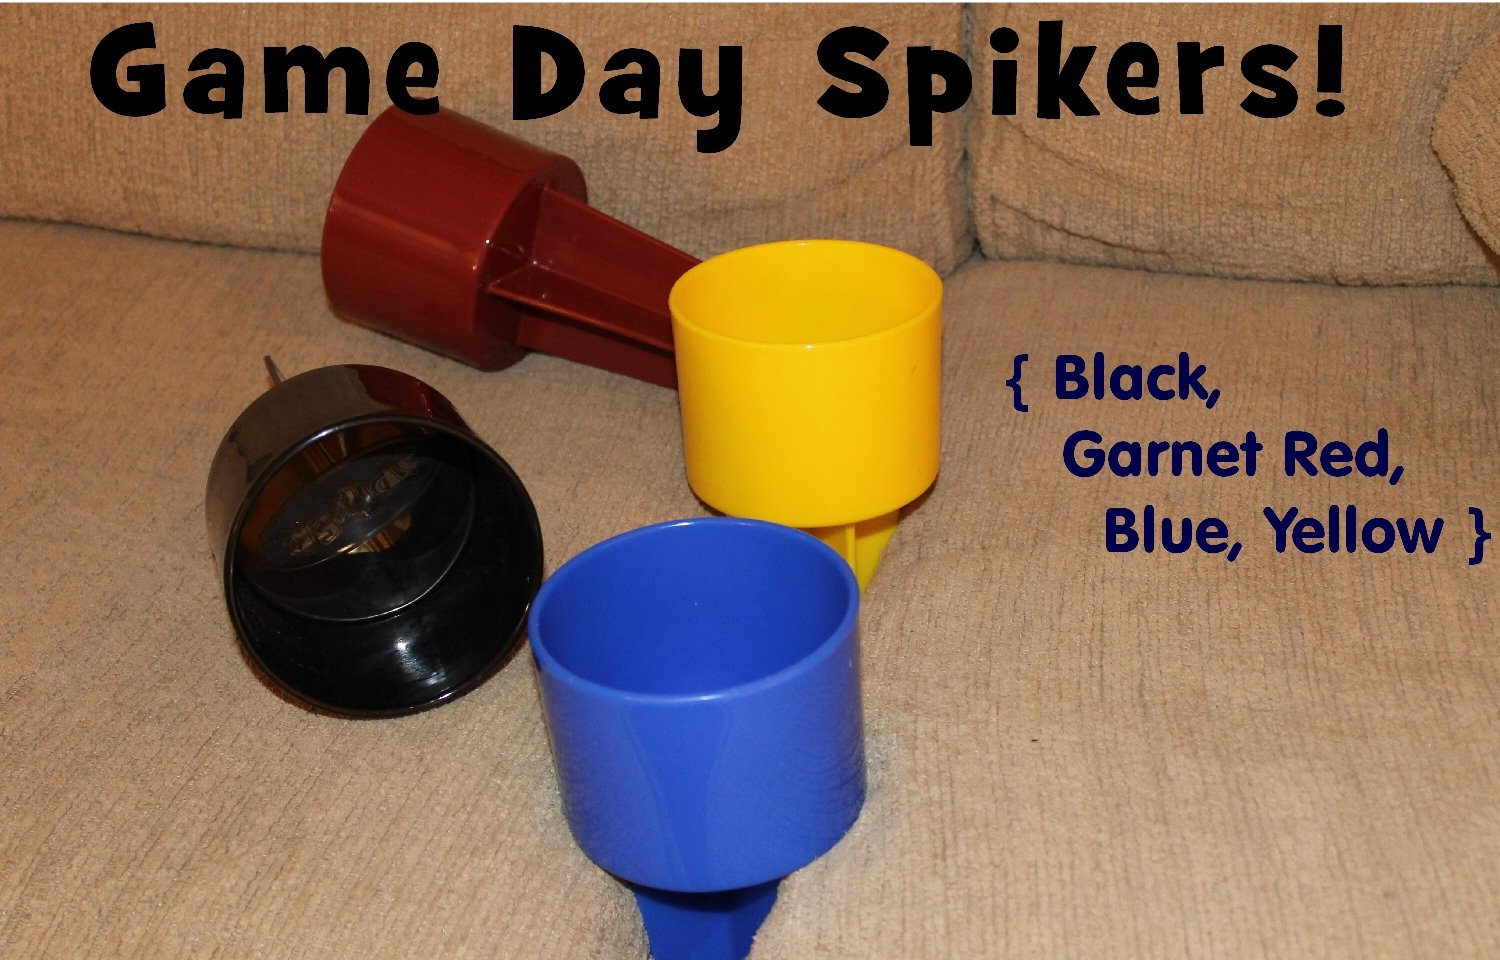 Spiker Game Day Limited Edition 48 Craft Pack for Monogramming by SPIKER (Image #1)